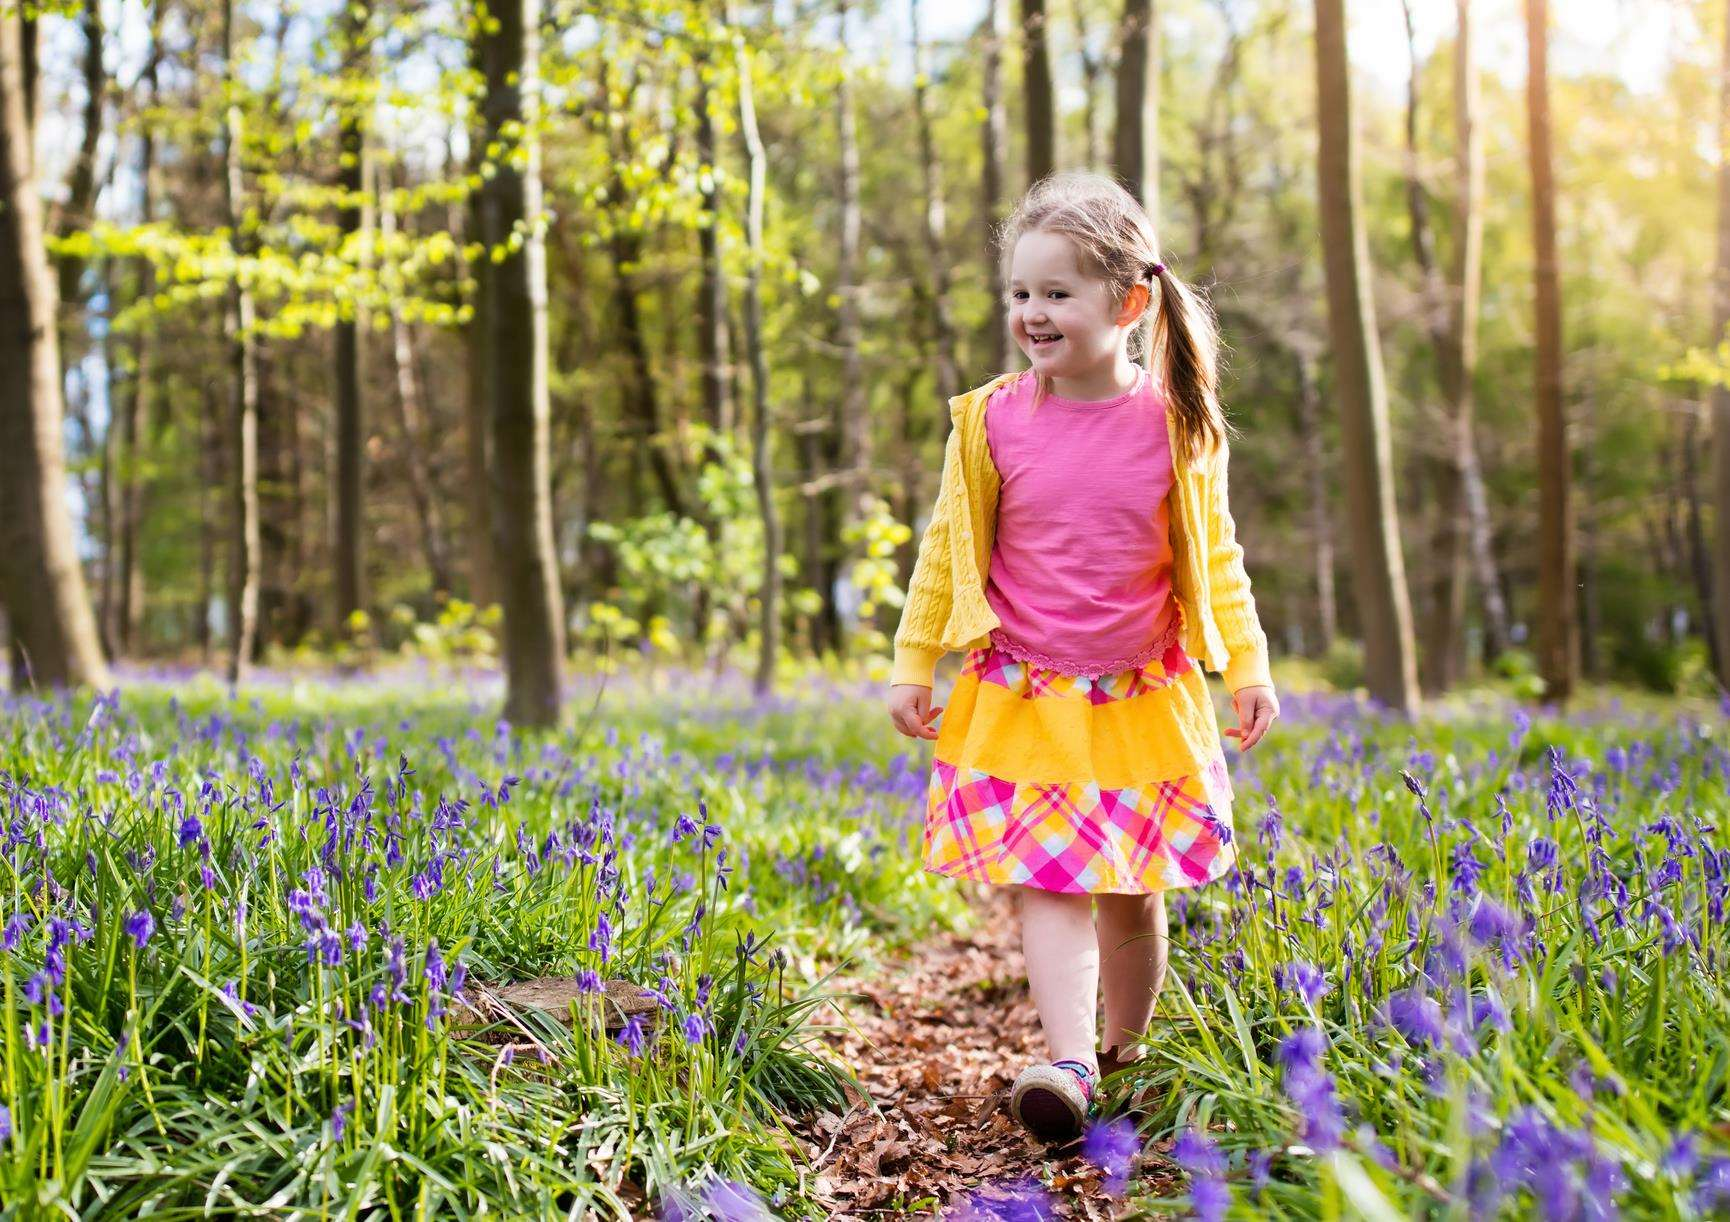 Enjoy getting out and about this May half term with National Trust activities